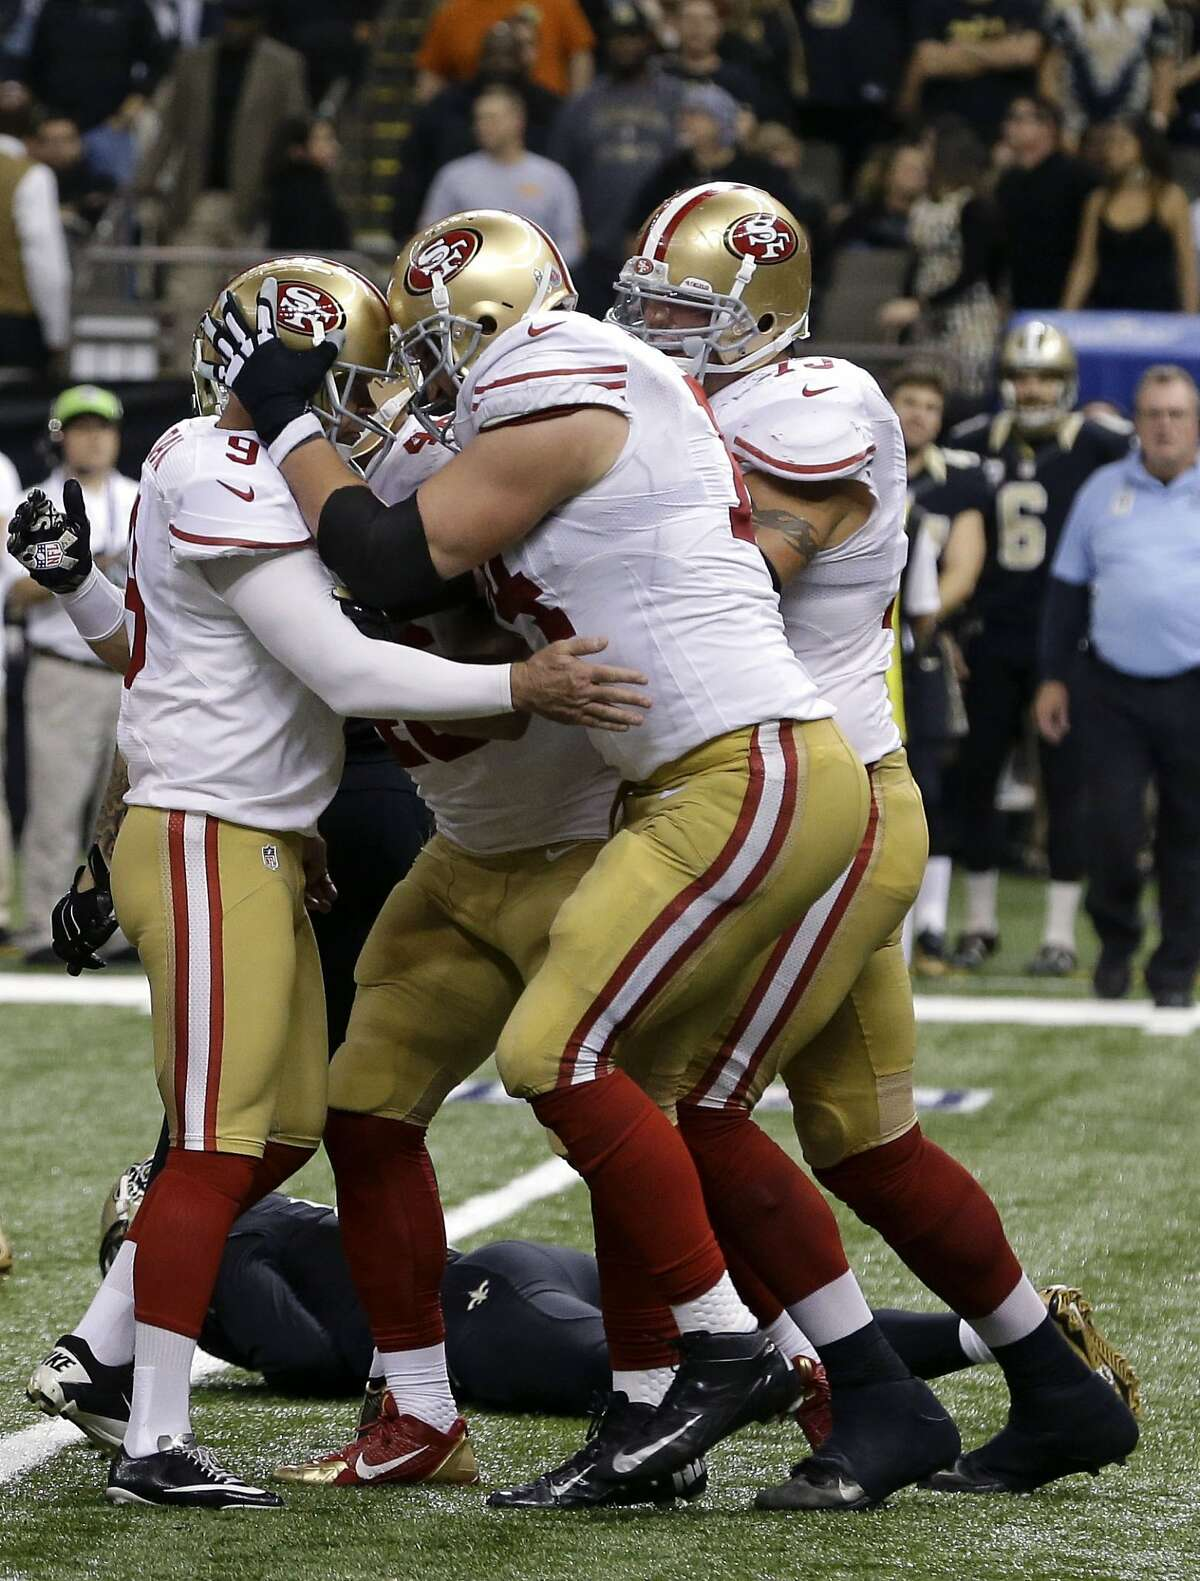 San Francisco 49ers kicker Phil Dawson (9) is congratulated by tackle Joe Staley (74) after kicking the game-winning field goal in overtime.